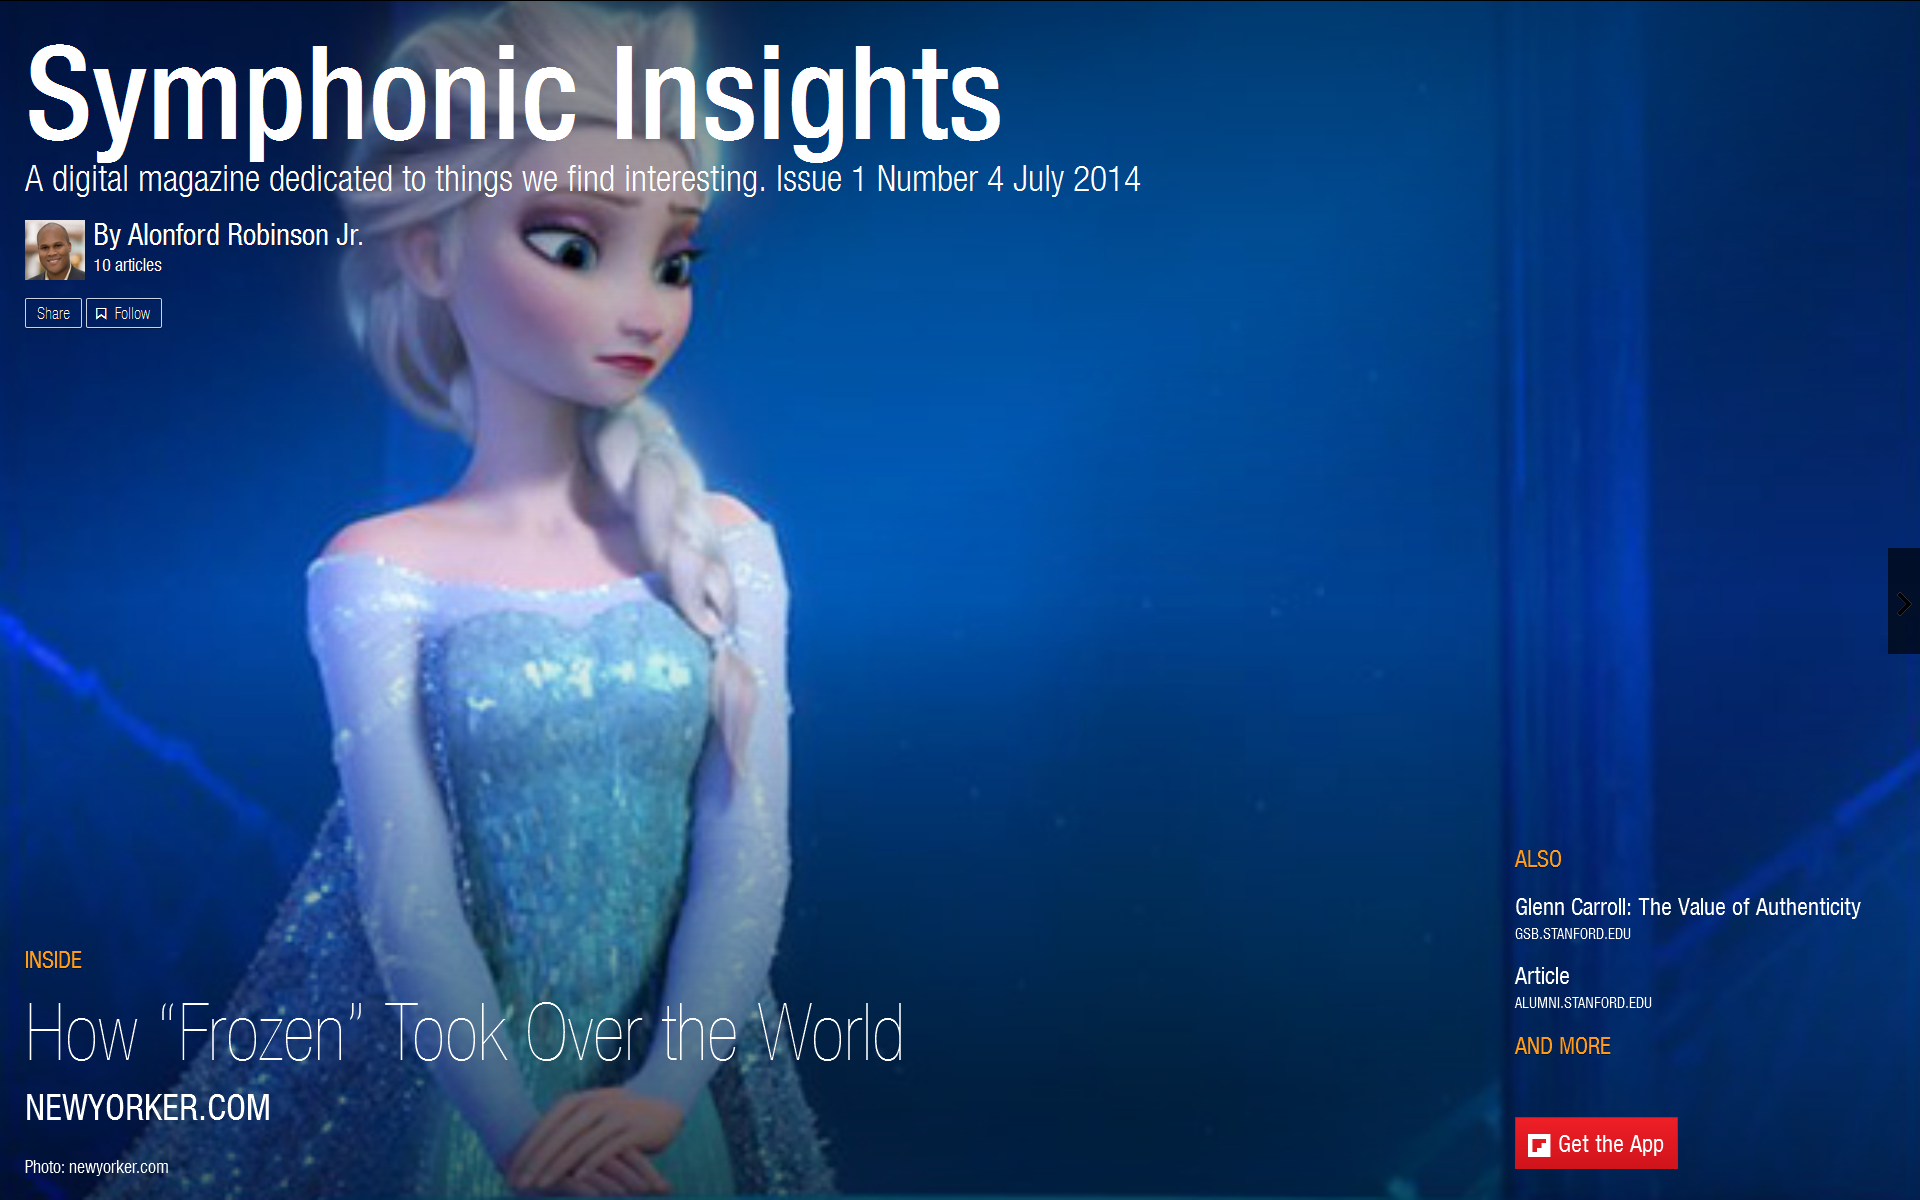 Symphonic Insights (July 2014)